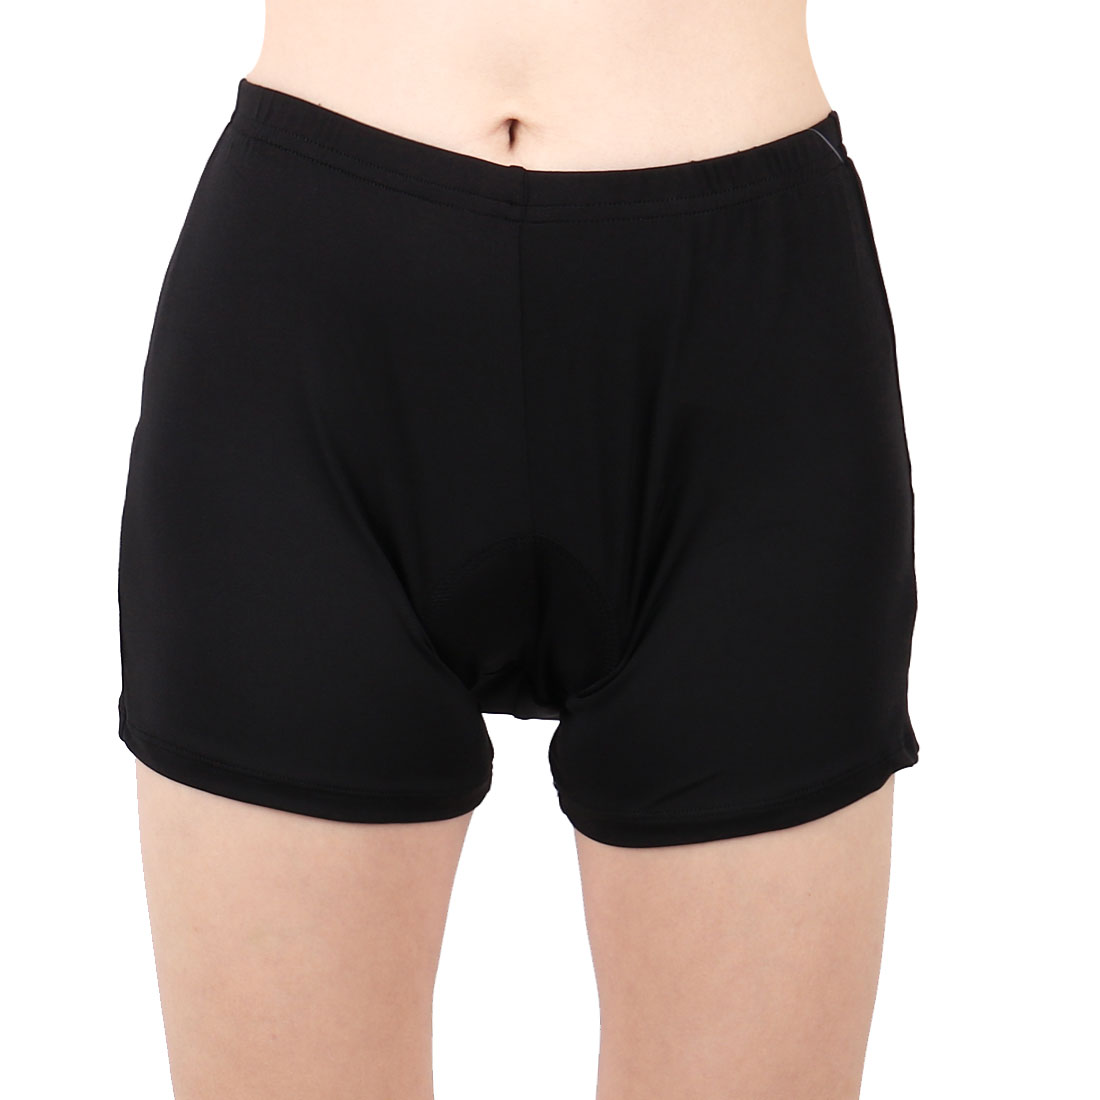 Women Polyester Outdoor Riding Bicycle Biking Underpants Cycling Shorts Black S/XS (US 0)